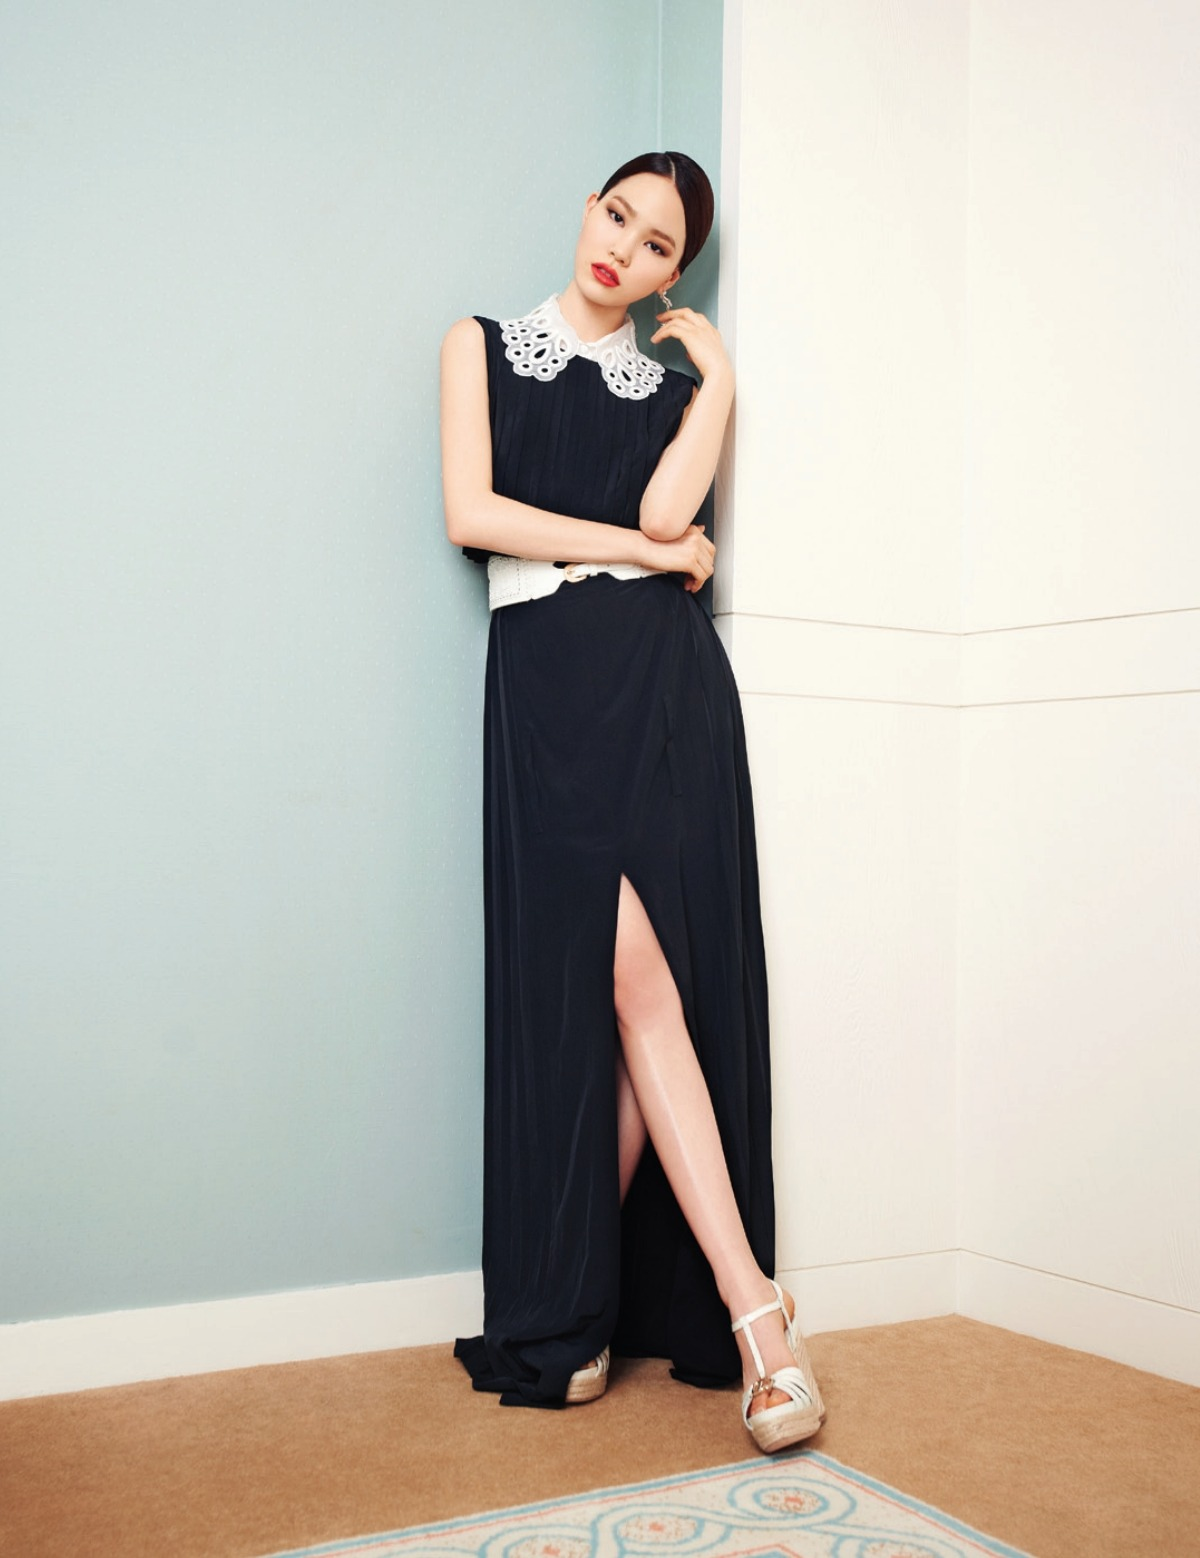 Jin Jung Sun Photographed by Ahn Jooyoung for Harper's Bazaar Korea May 2012